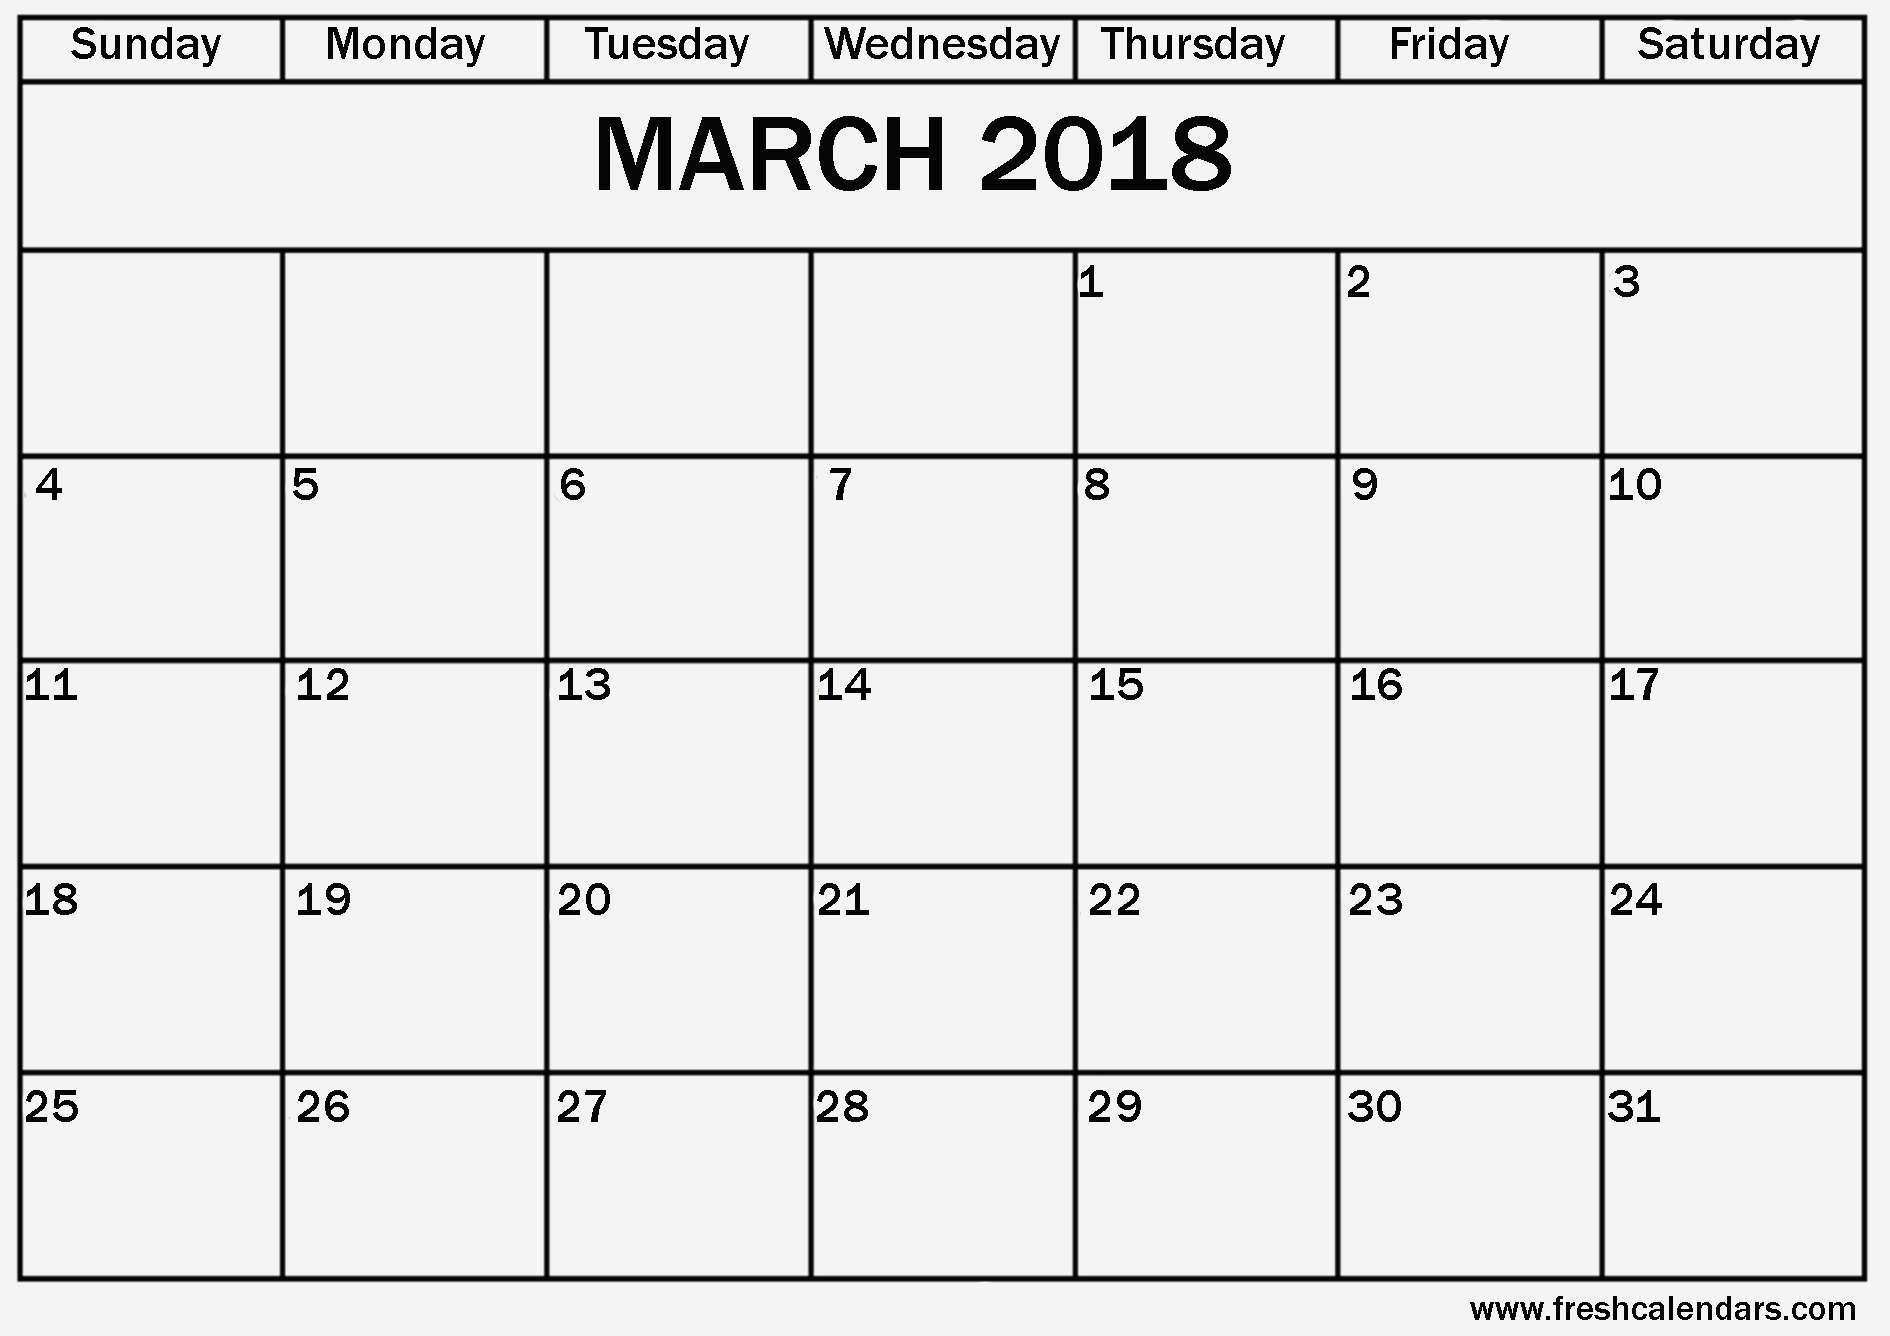 March 2019 Calendar Uk Printable Más Caliente Tips Intended for Free Printable Word Calendar 2019 Calendar Of March 2019 Calendar Uk Printable Más Recientes March 2019 Desktop Background Calendar